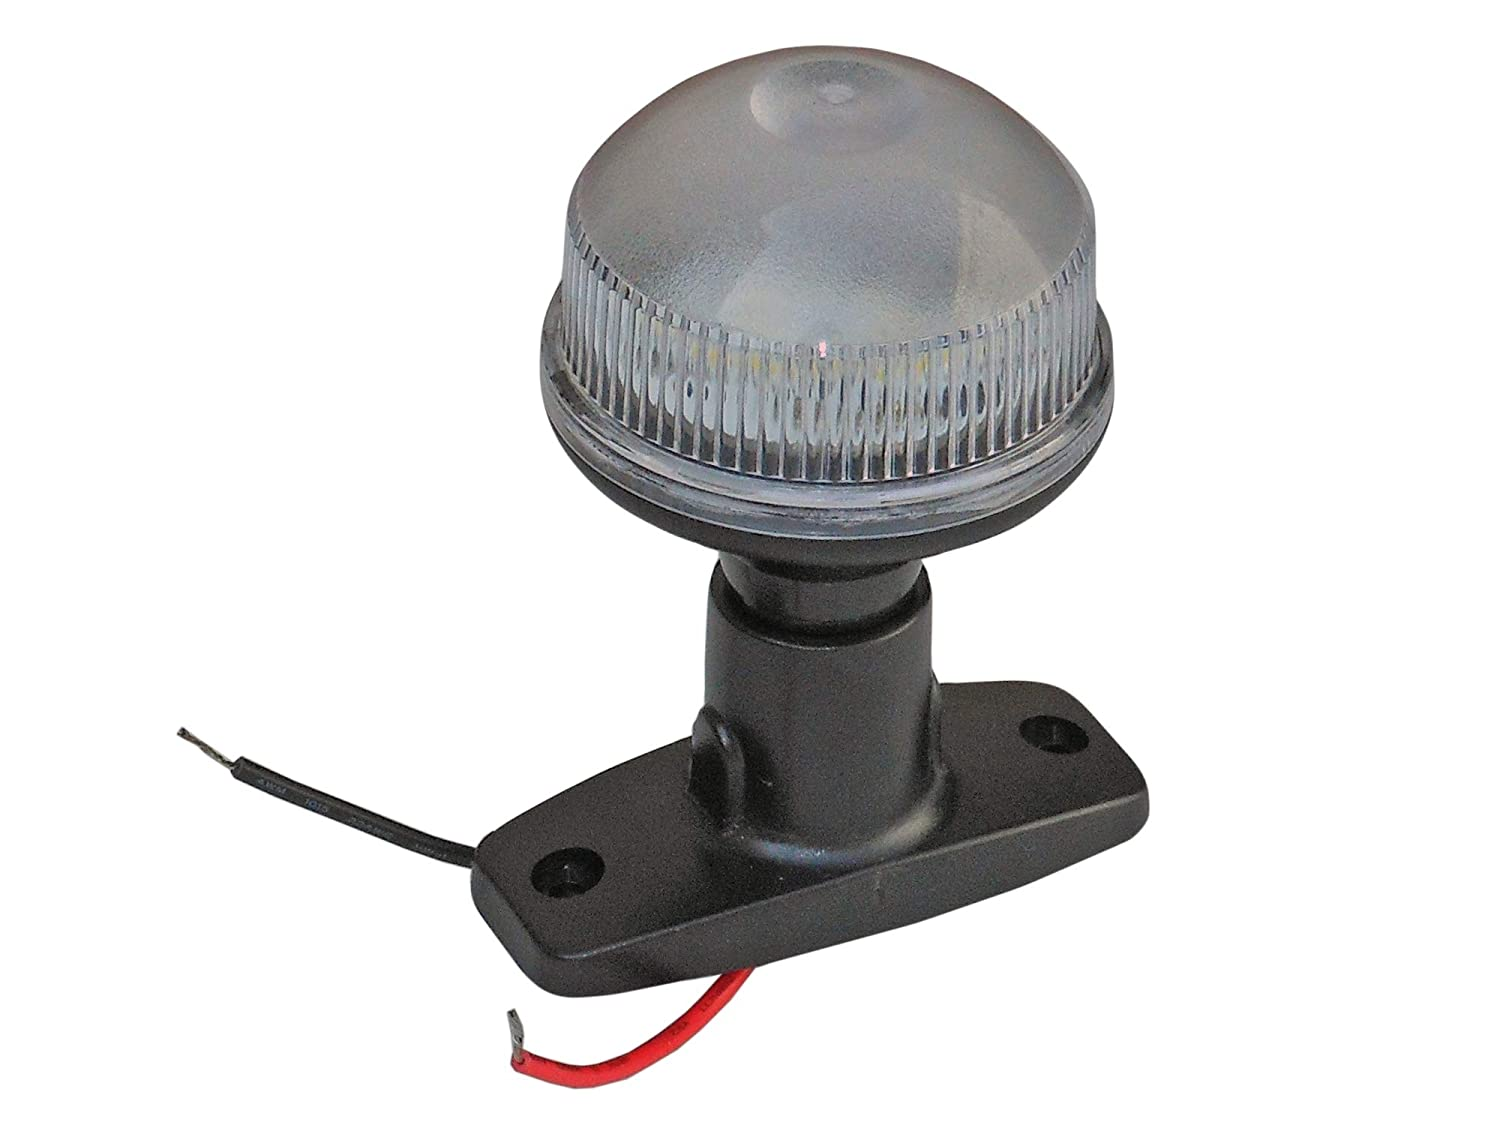 Marine All Round Strobe Led Anchor Navigation Light 12v for Boats - Five Oceans (BC 3470)